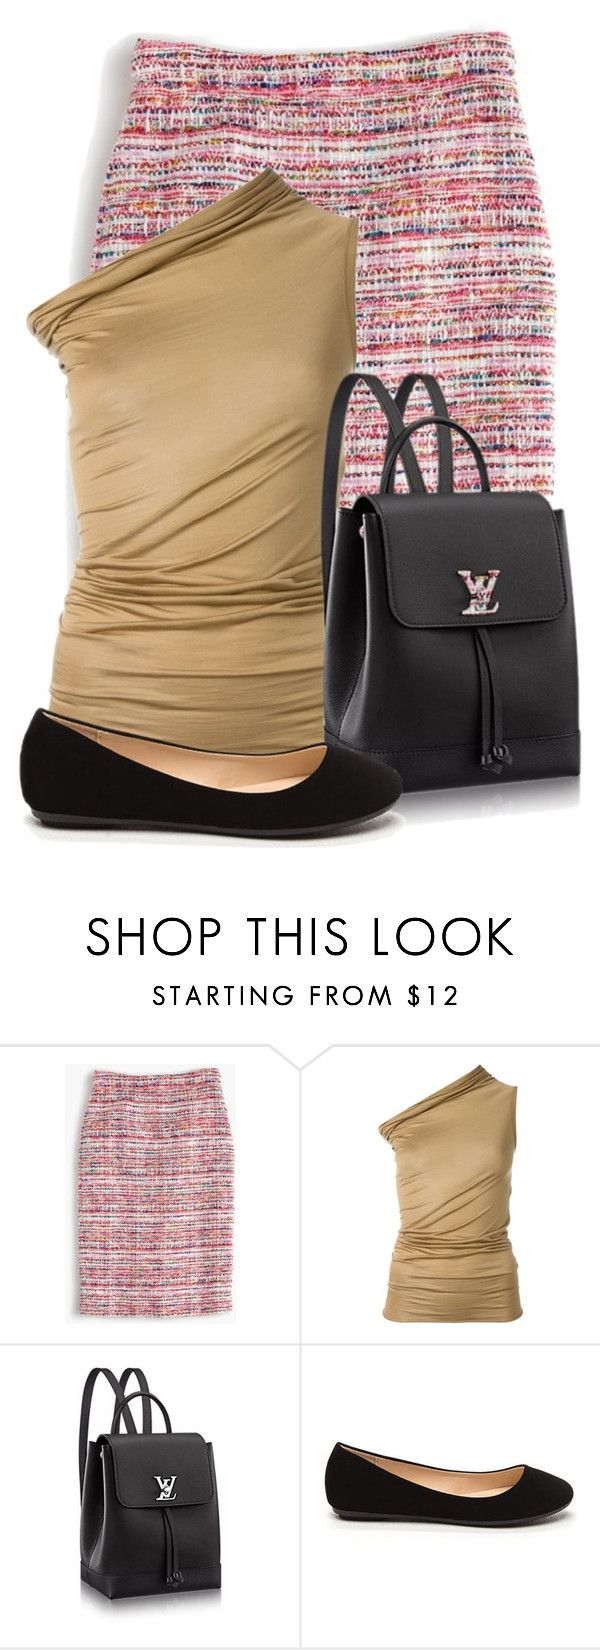 """""""Untitled #16725"""" by nanette-253 ❤ liked on Polyvore featuring J.Crew and Rick Owens"""